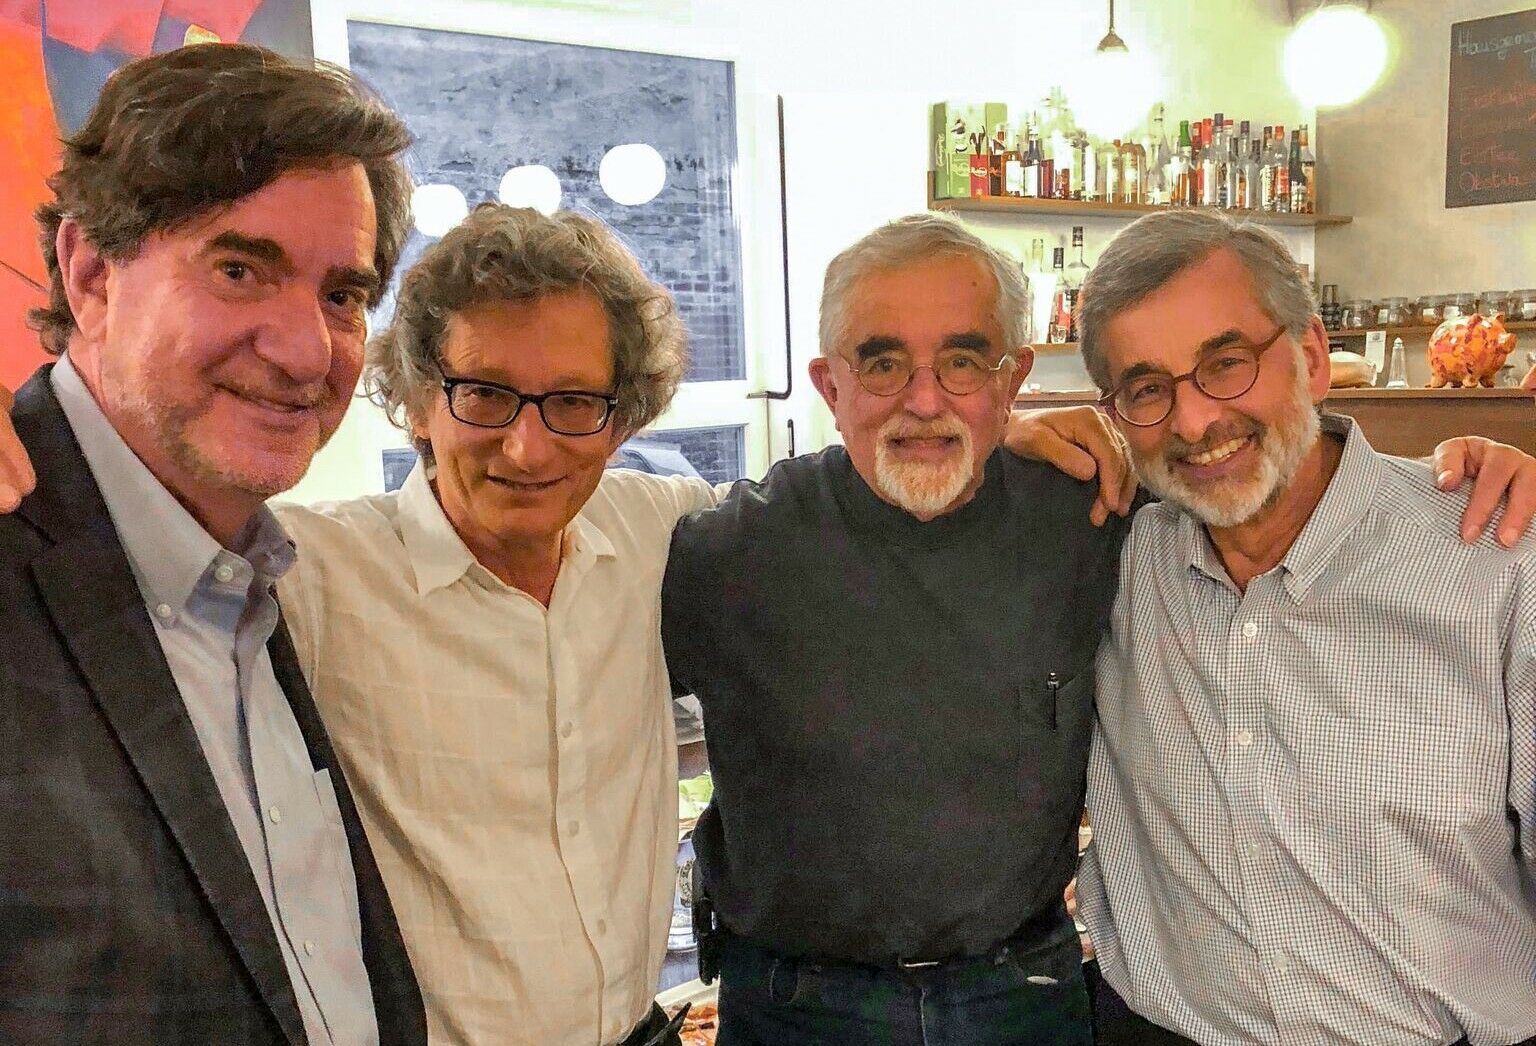 Four men pose for a picture, smiling, with their arms resting on each other's shoulders.